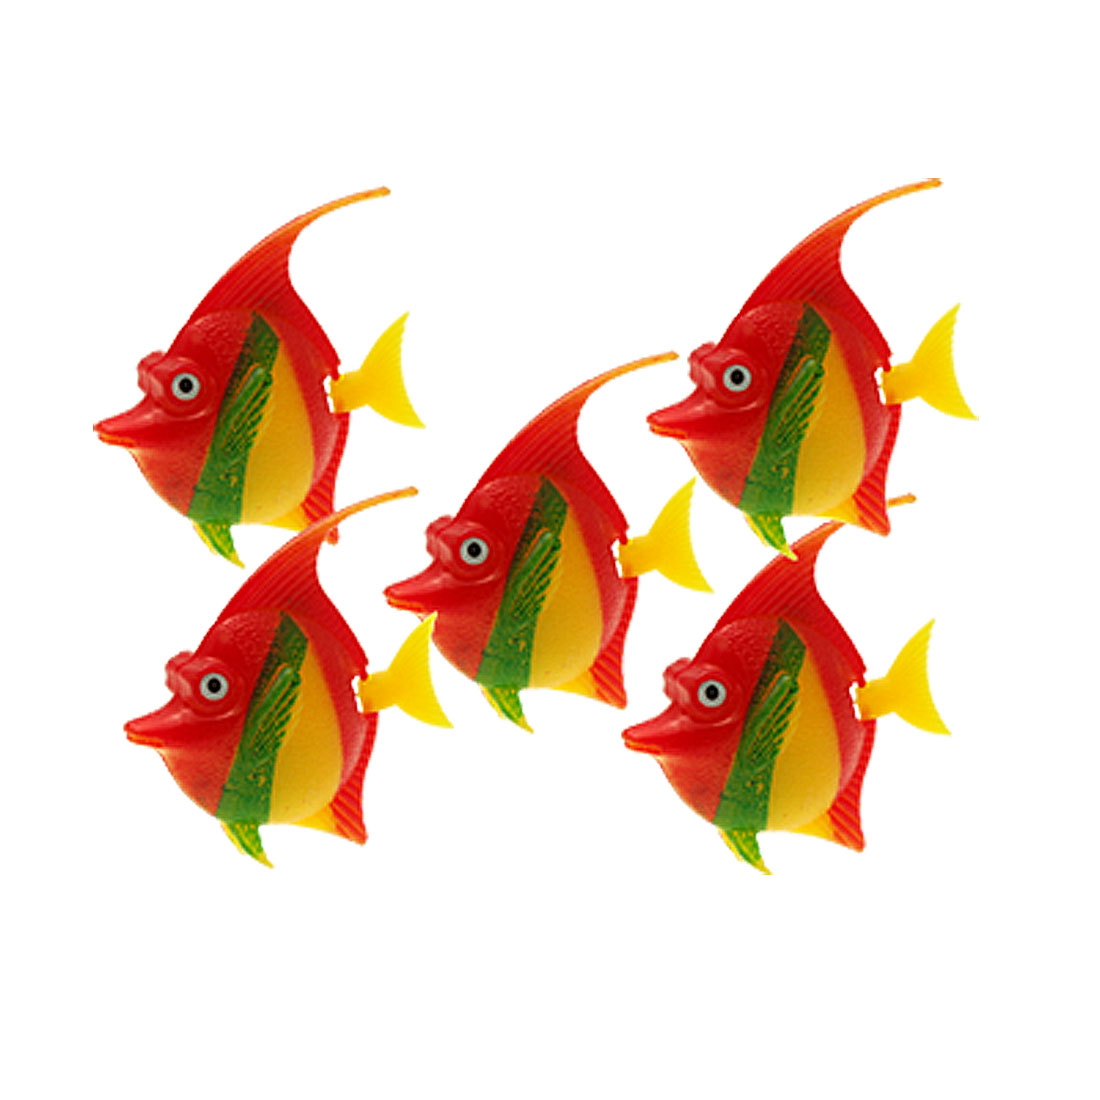 5 pcs Flexible Tail Plastic Fish Aquarium Tank Decoration